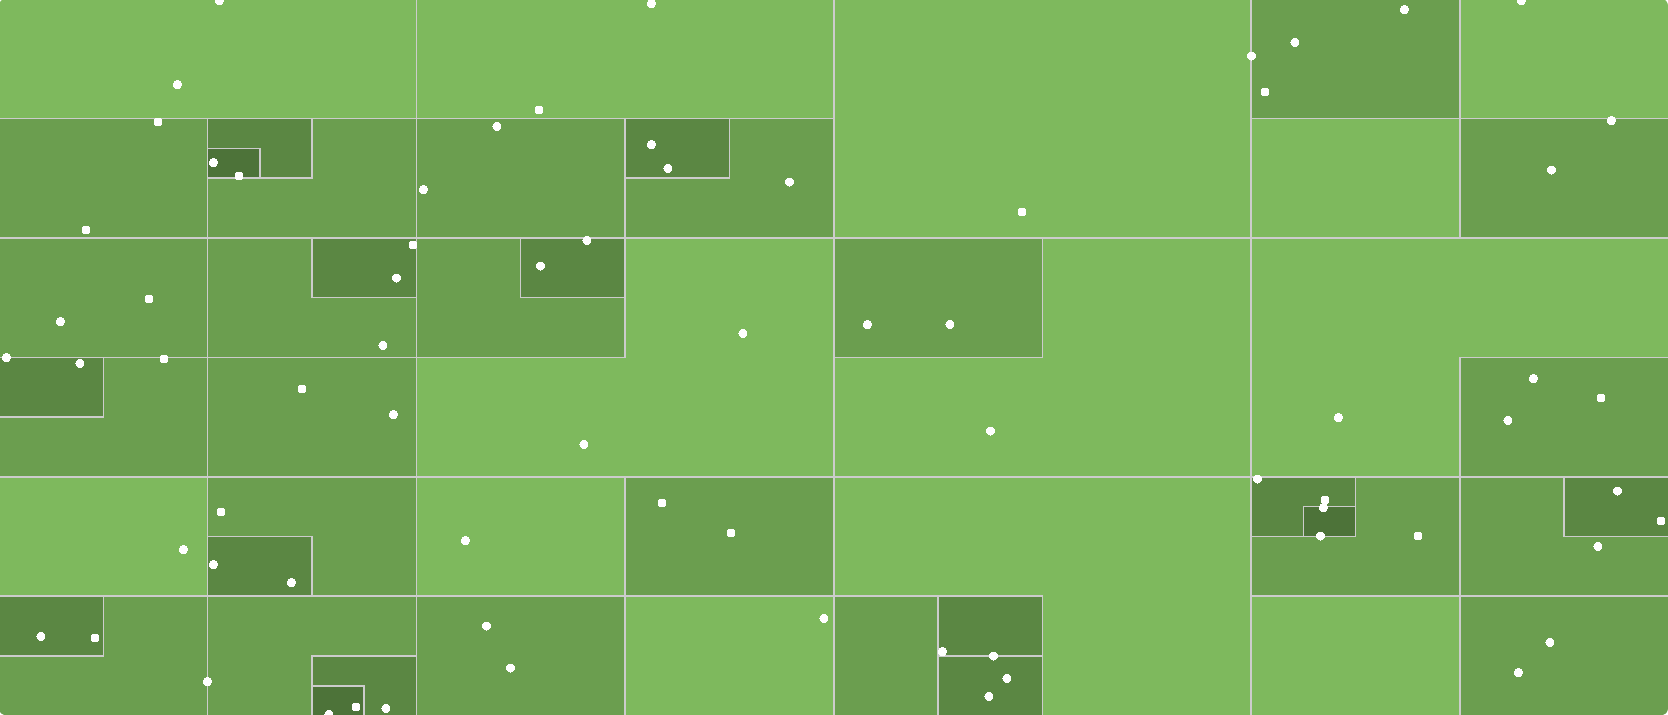 An visualisation of an example QuadTree from the page I linked to above.